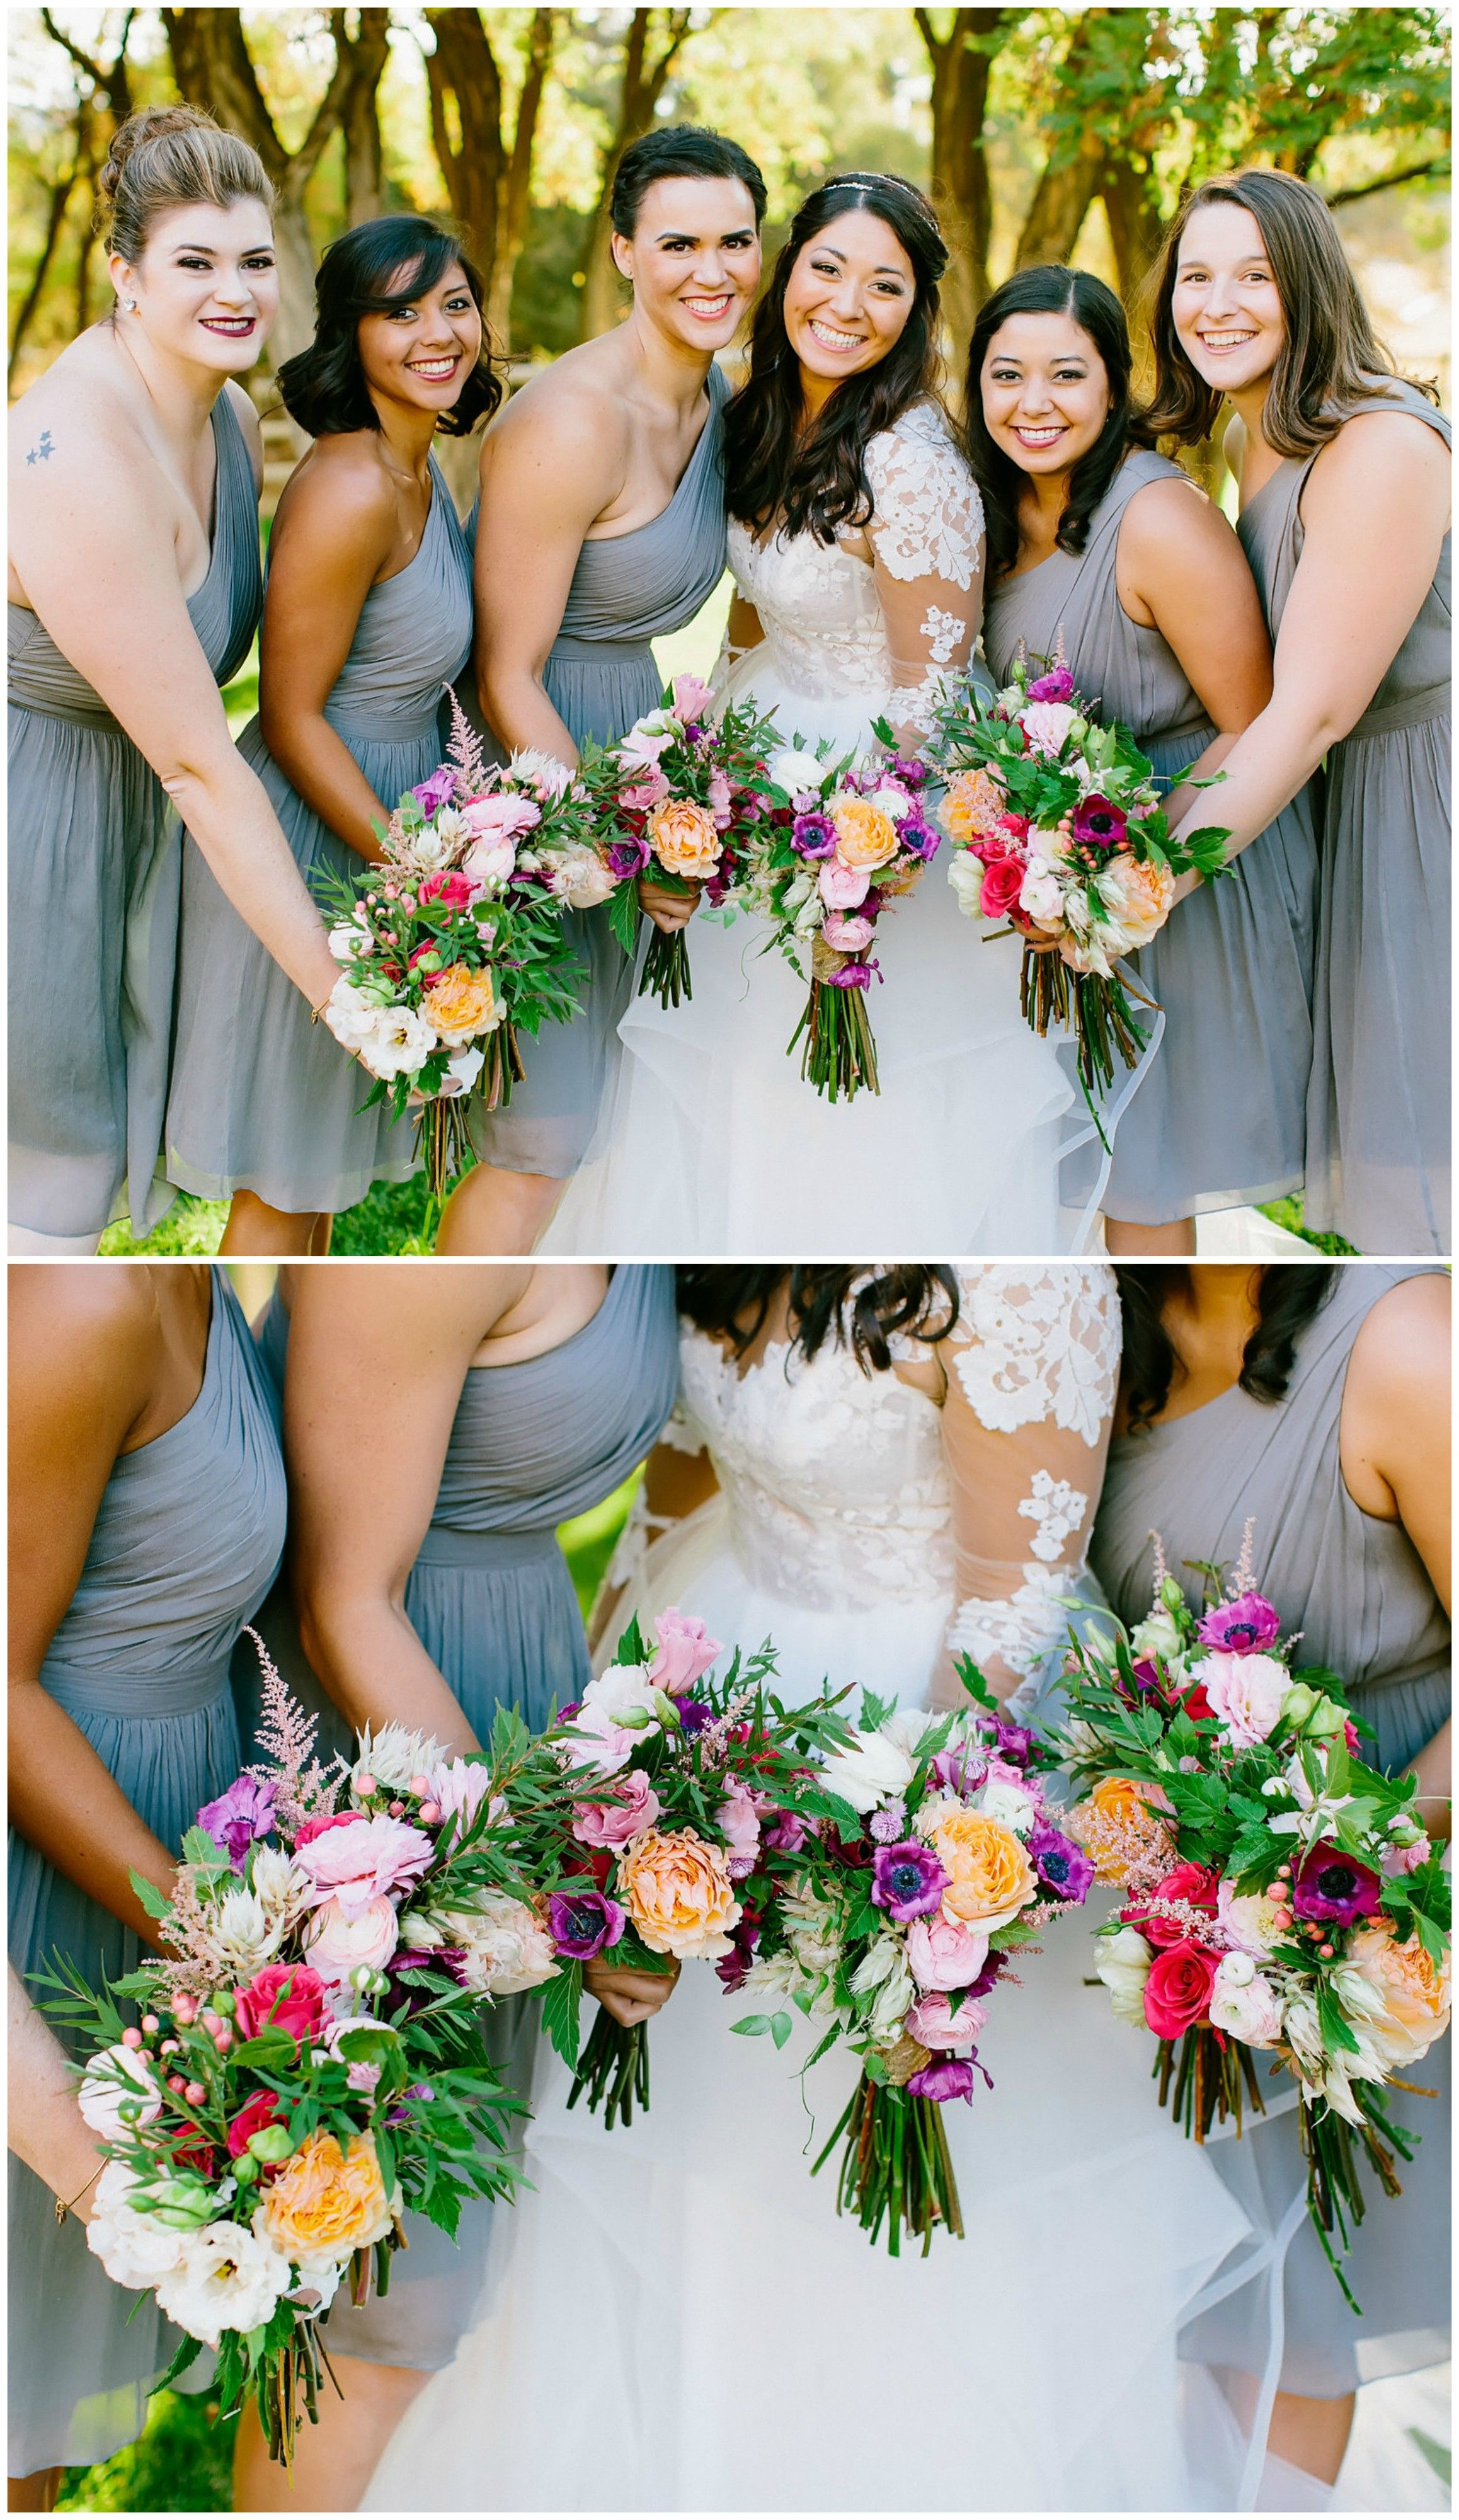 Rustic summer wedding at quiet meadow farm mapleton ut mid bridal party mid length one shoulder grey bridesmaid dresses colorful floral wedding bouquets ombrellifo Images